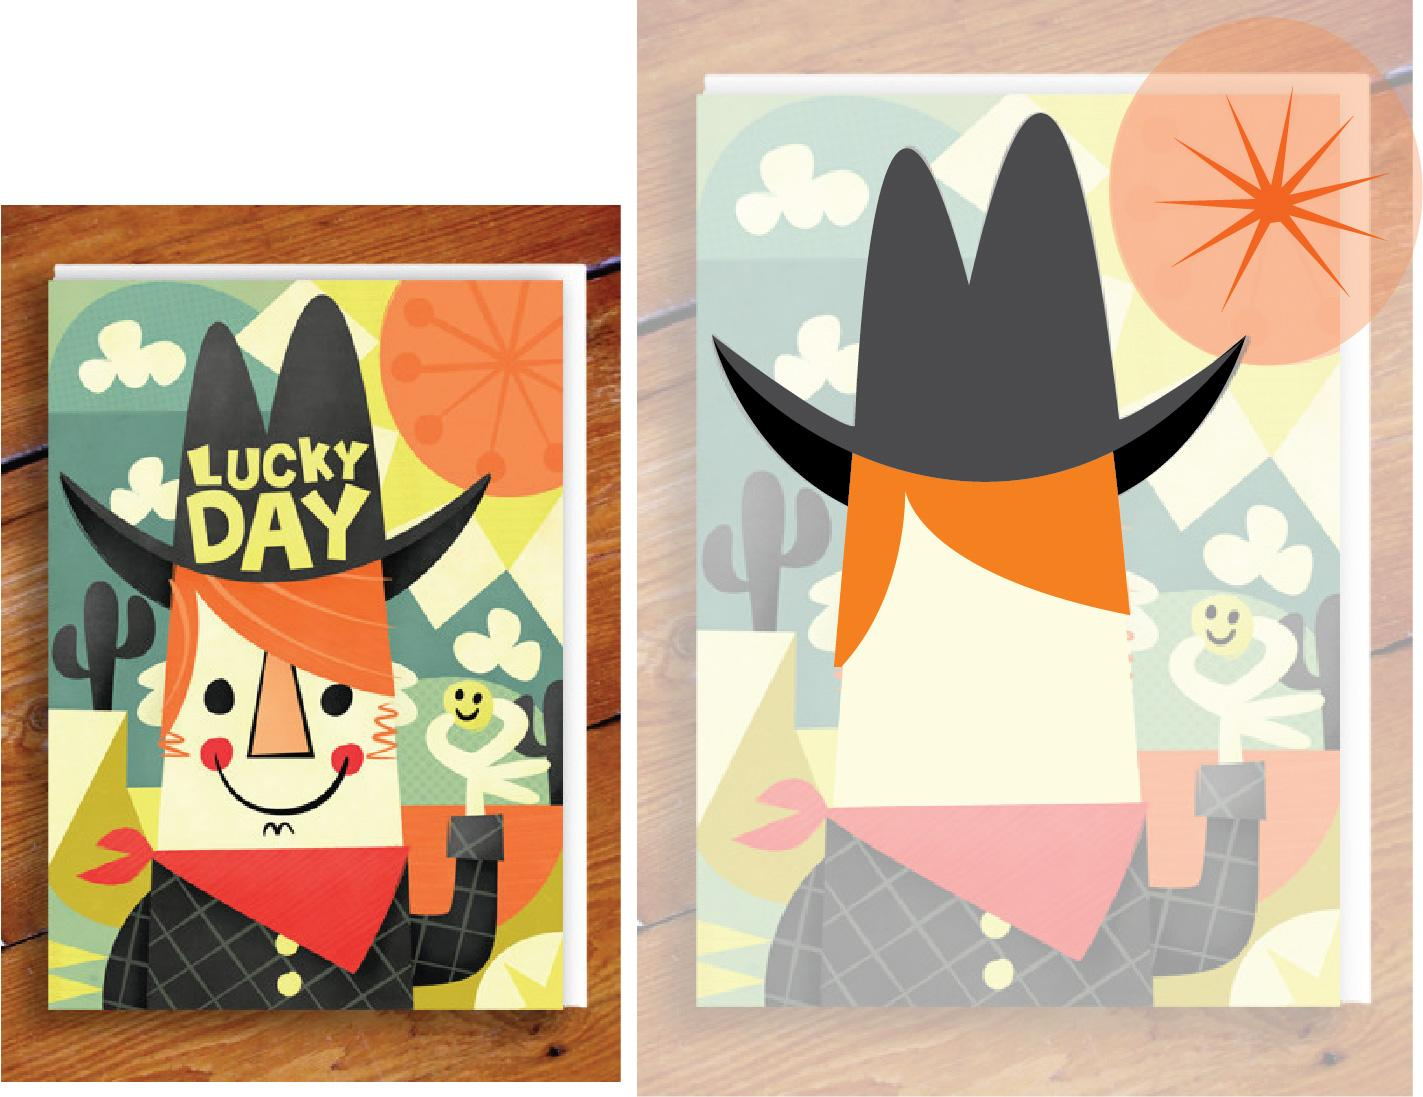 Pintachan: Lucky Day - image 3 - student project